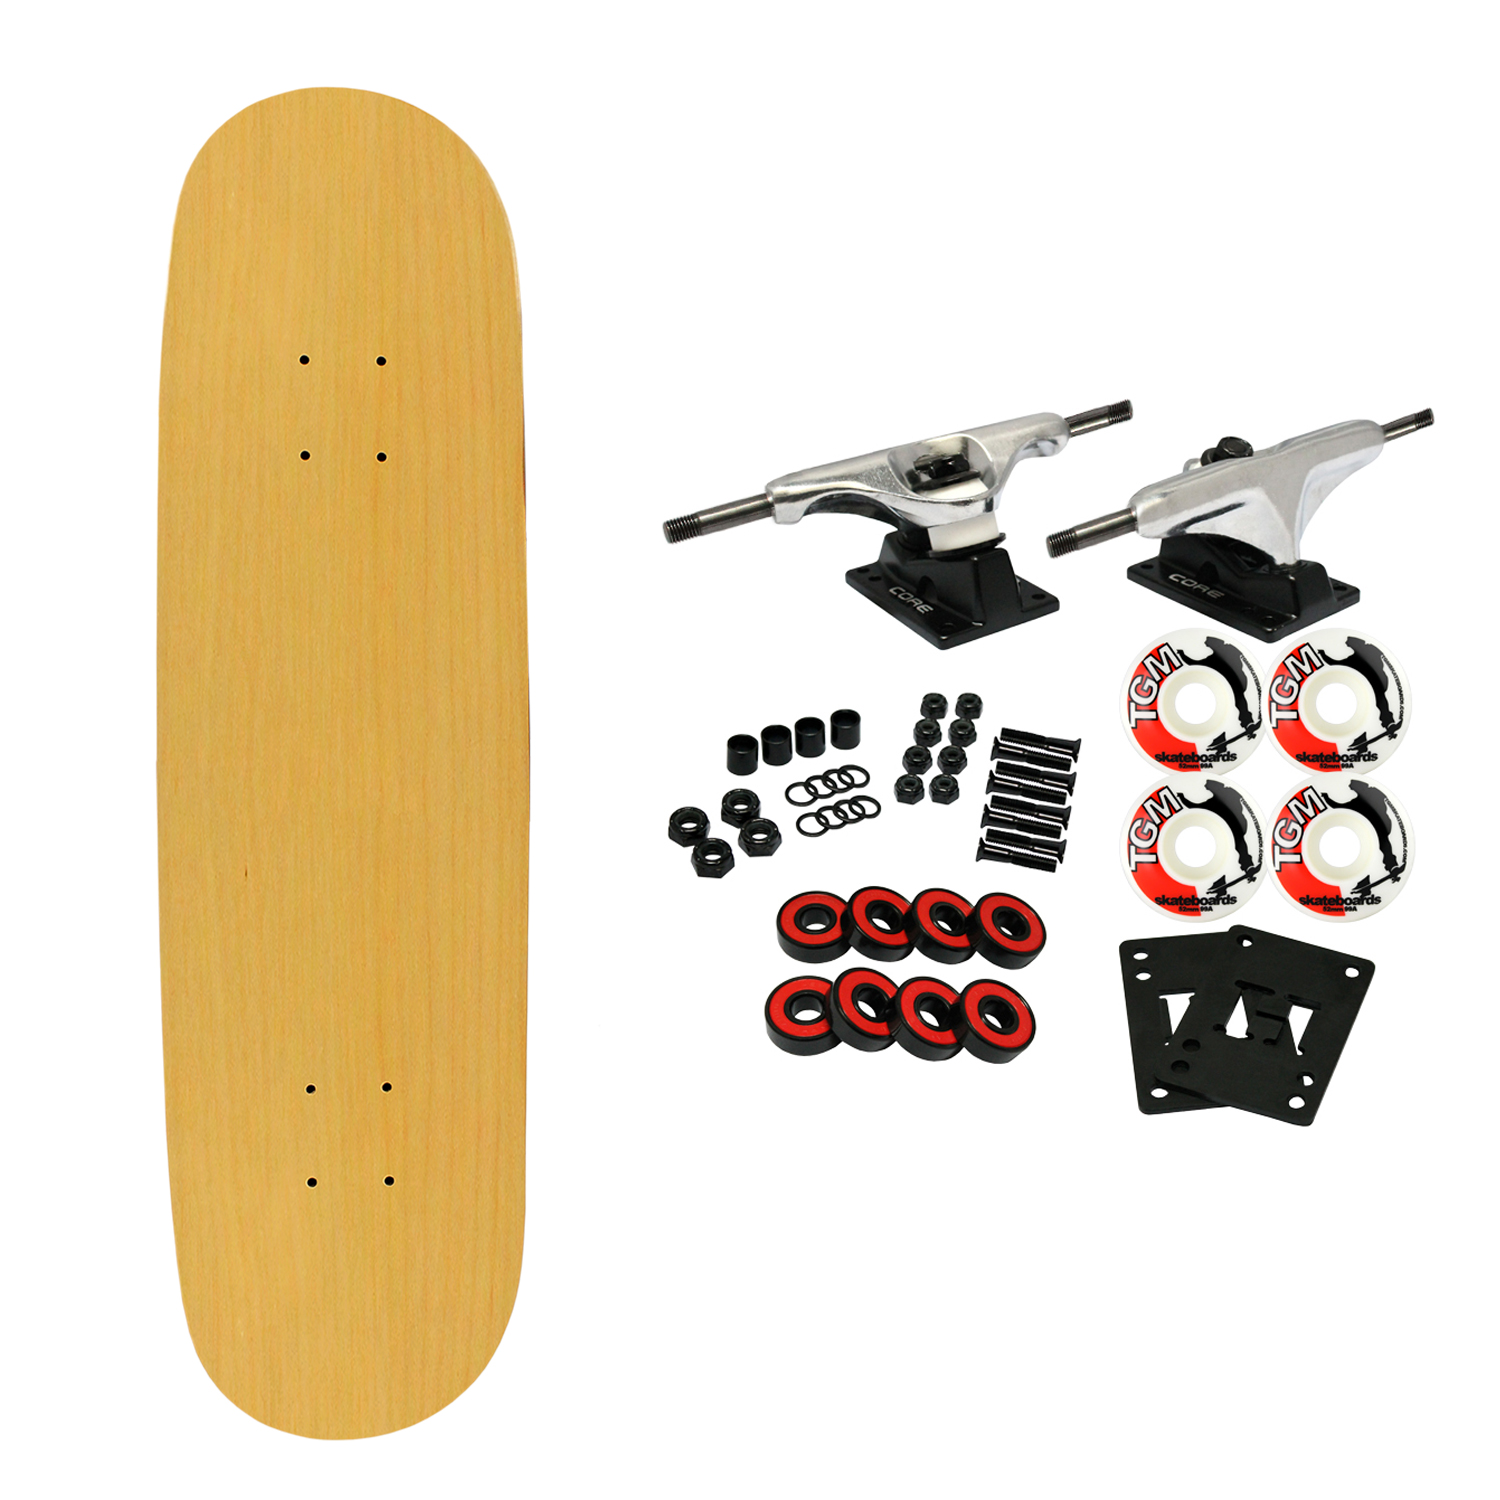 "Moose Complete Skateboard NATURAL 8.0"" Silver/White"